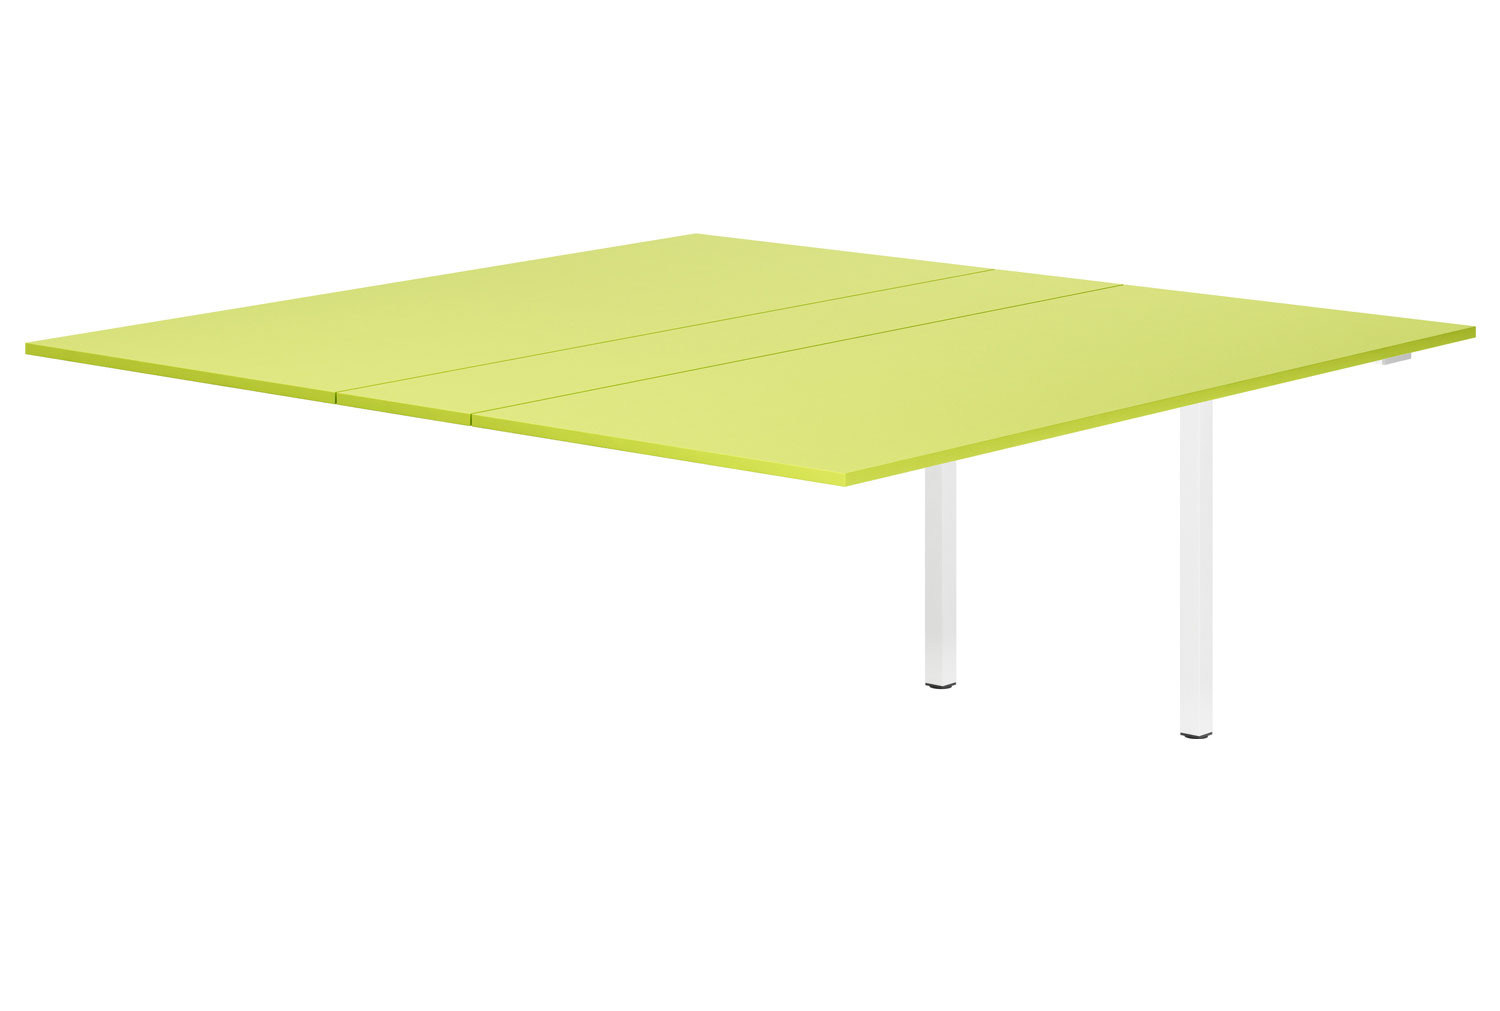 Campos Meeting Table Add On Unit (Green)